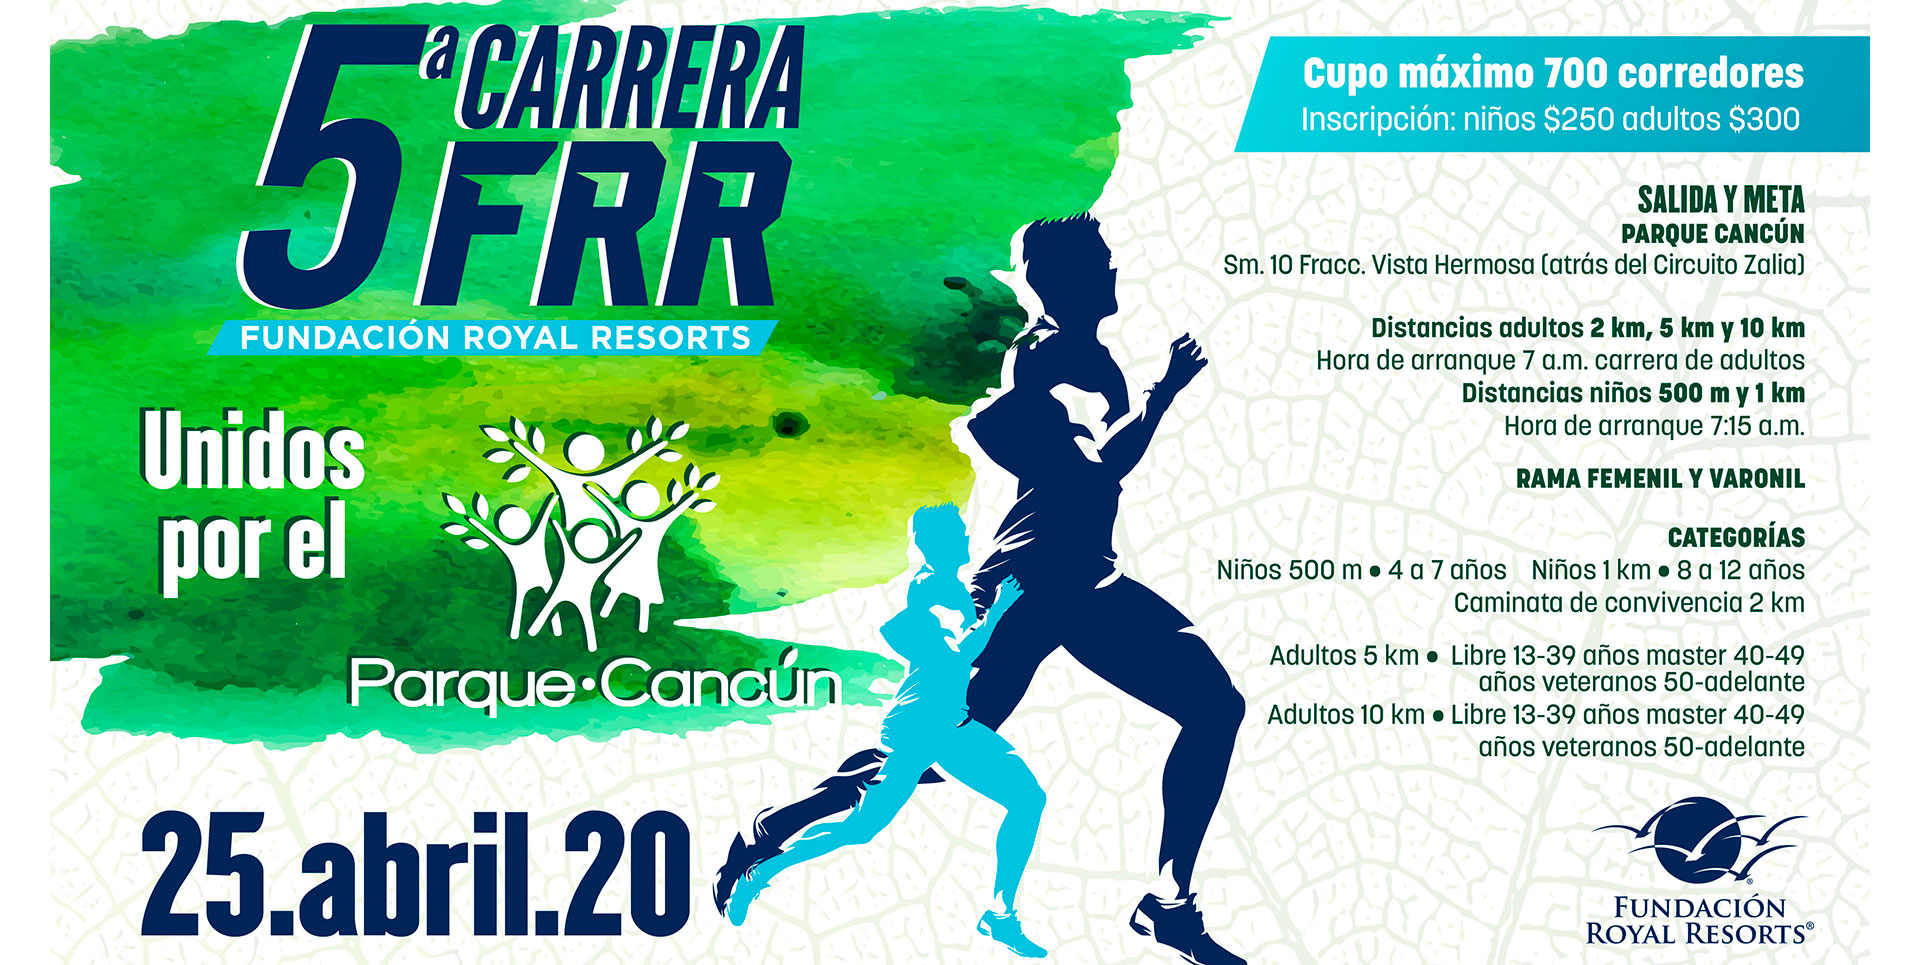 Carrera 5ta Royal Resorts